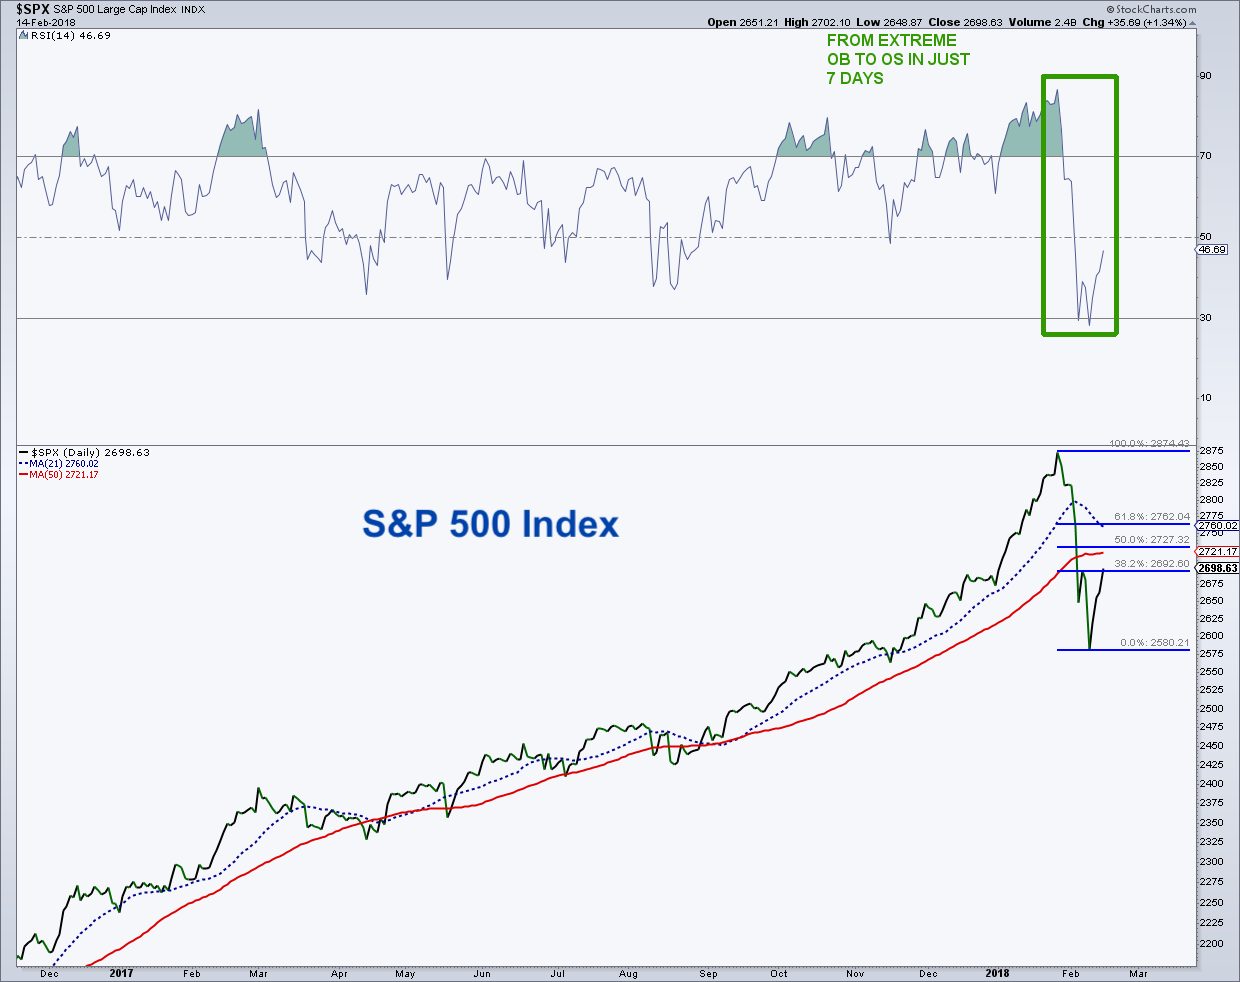 s&p 500 trading analysis chart price targets february 15